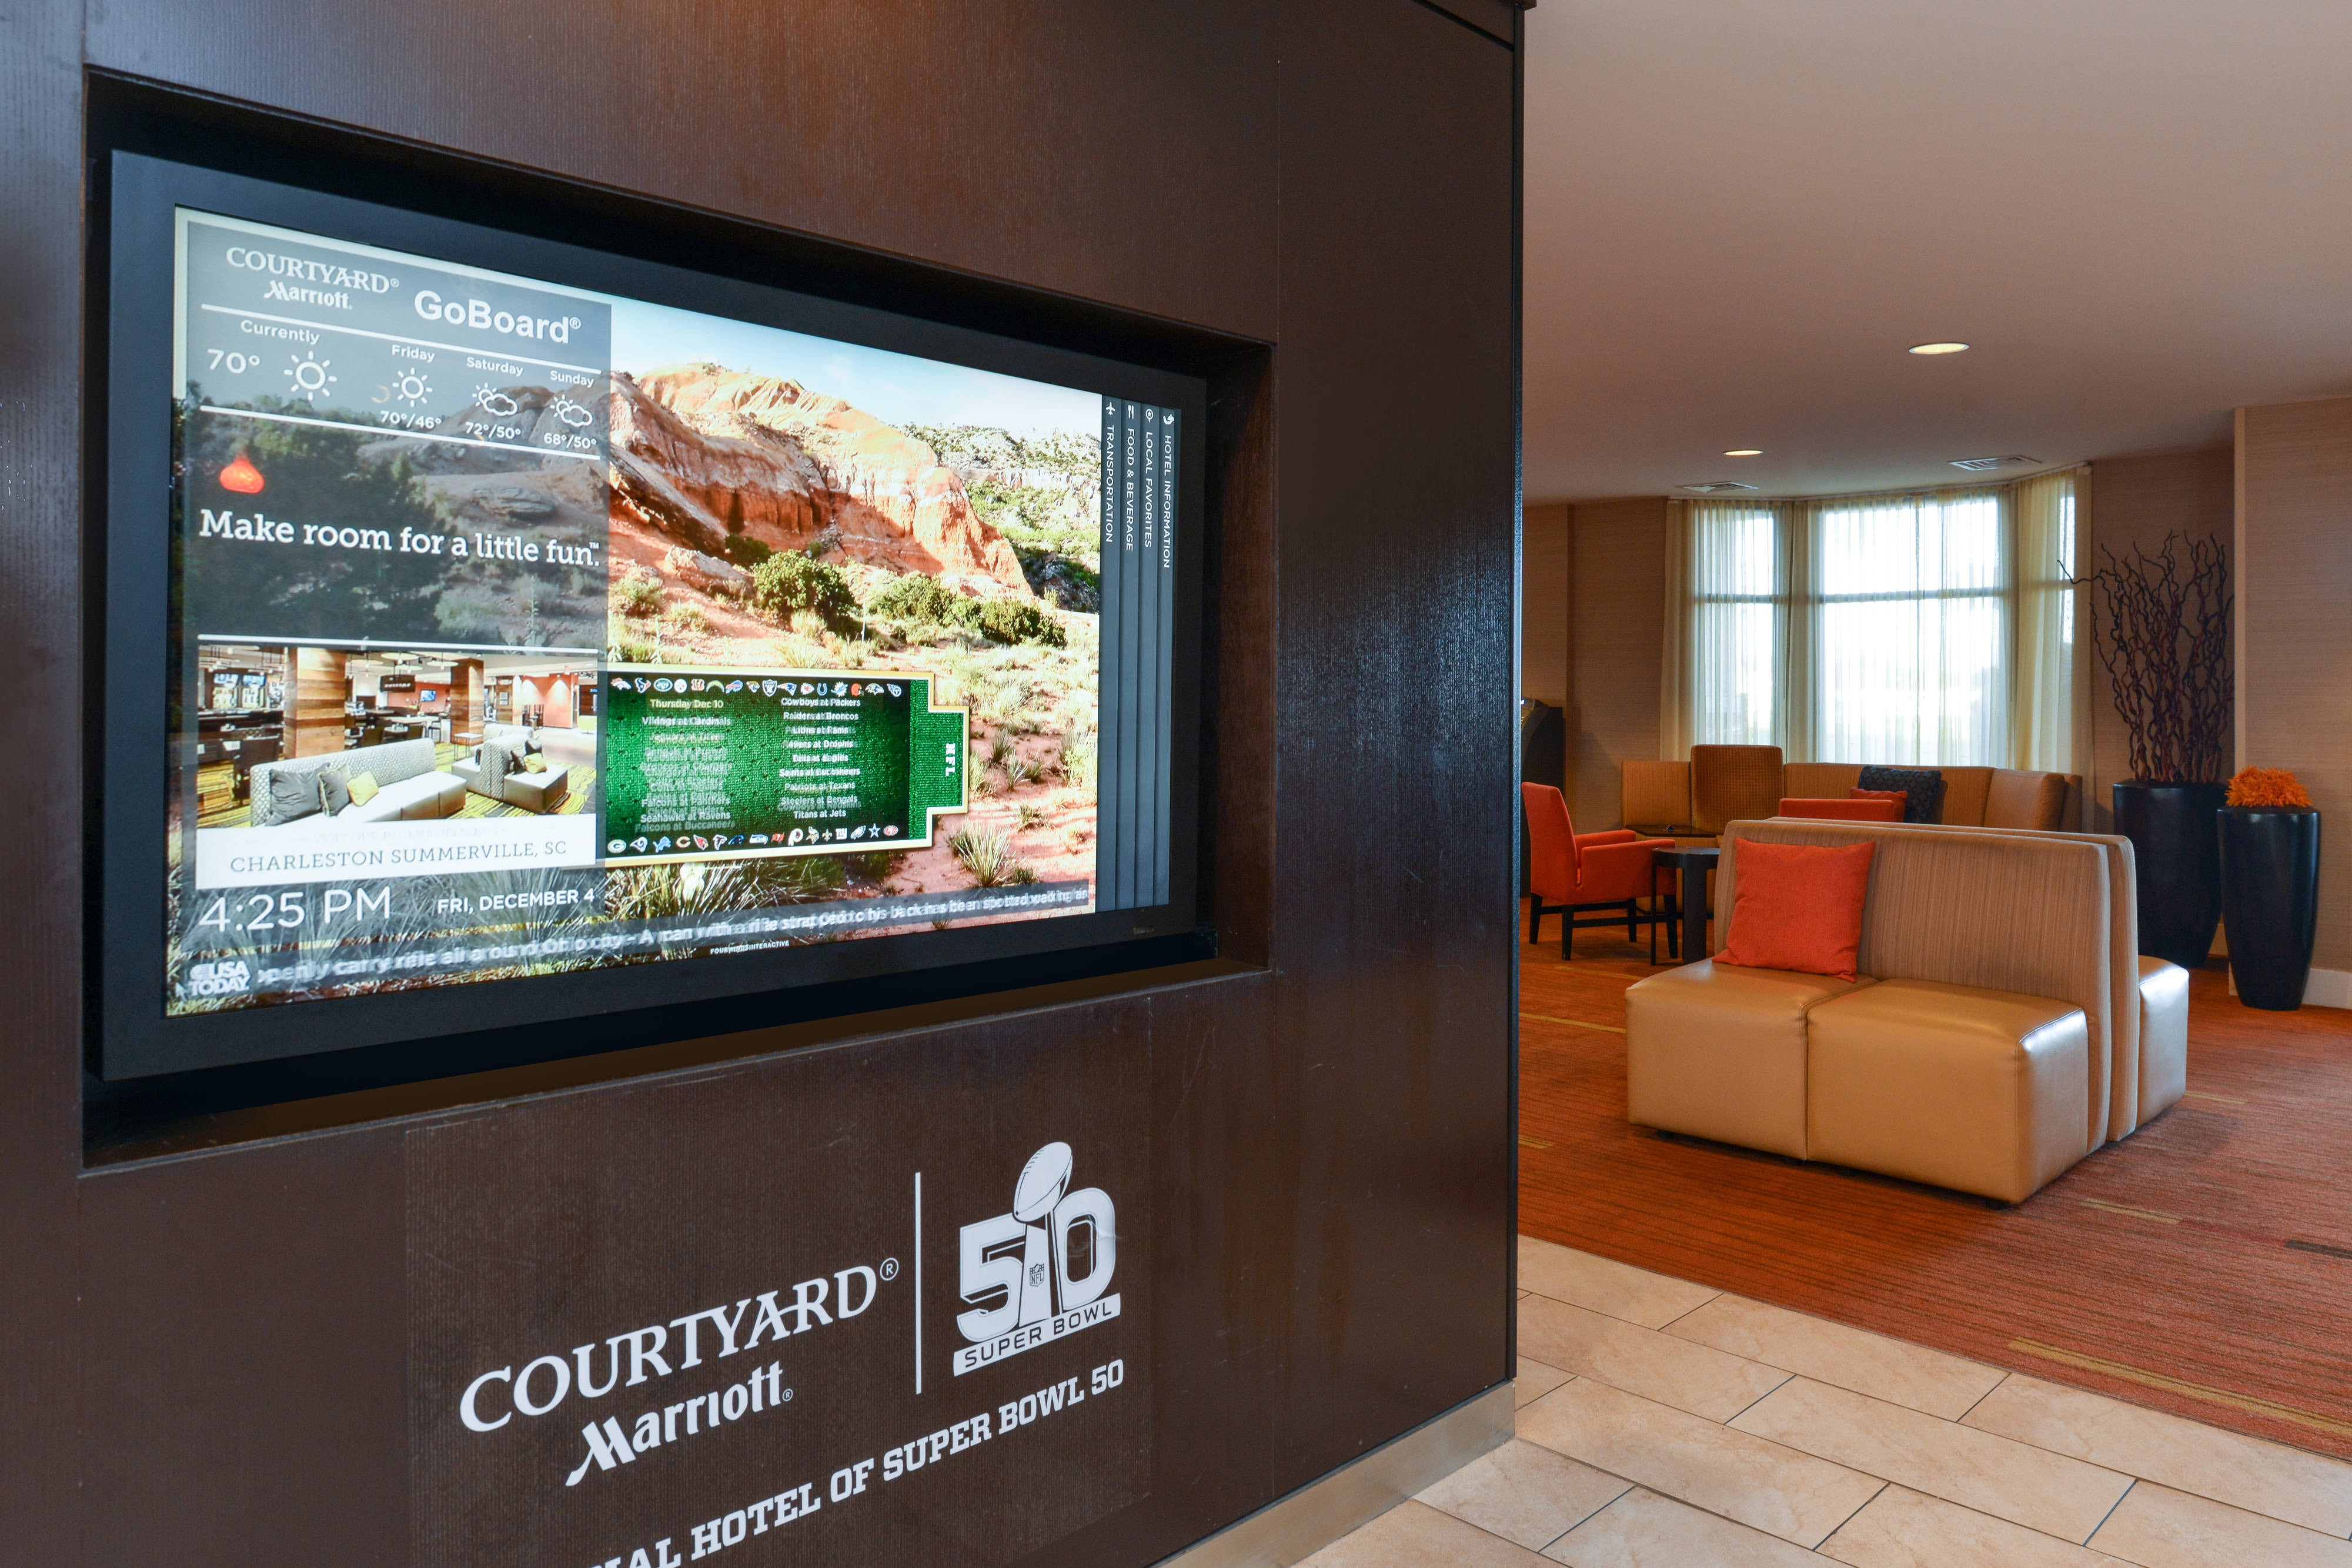 Courtyard by Marriott-Laredo